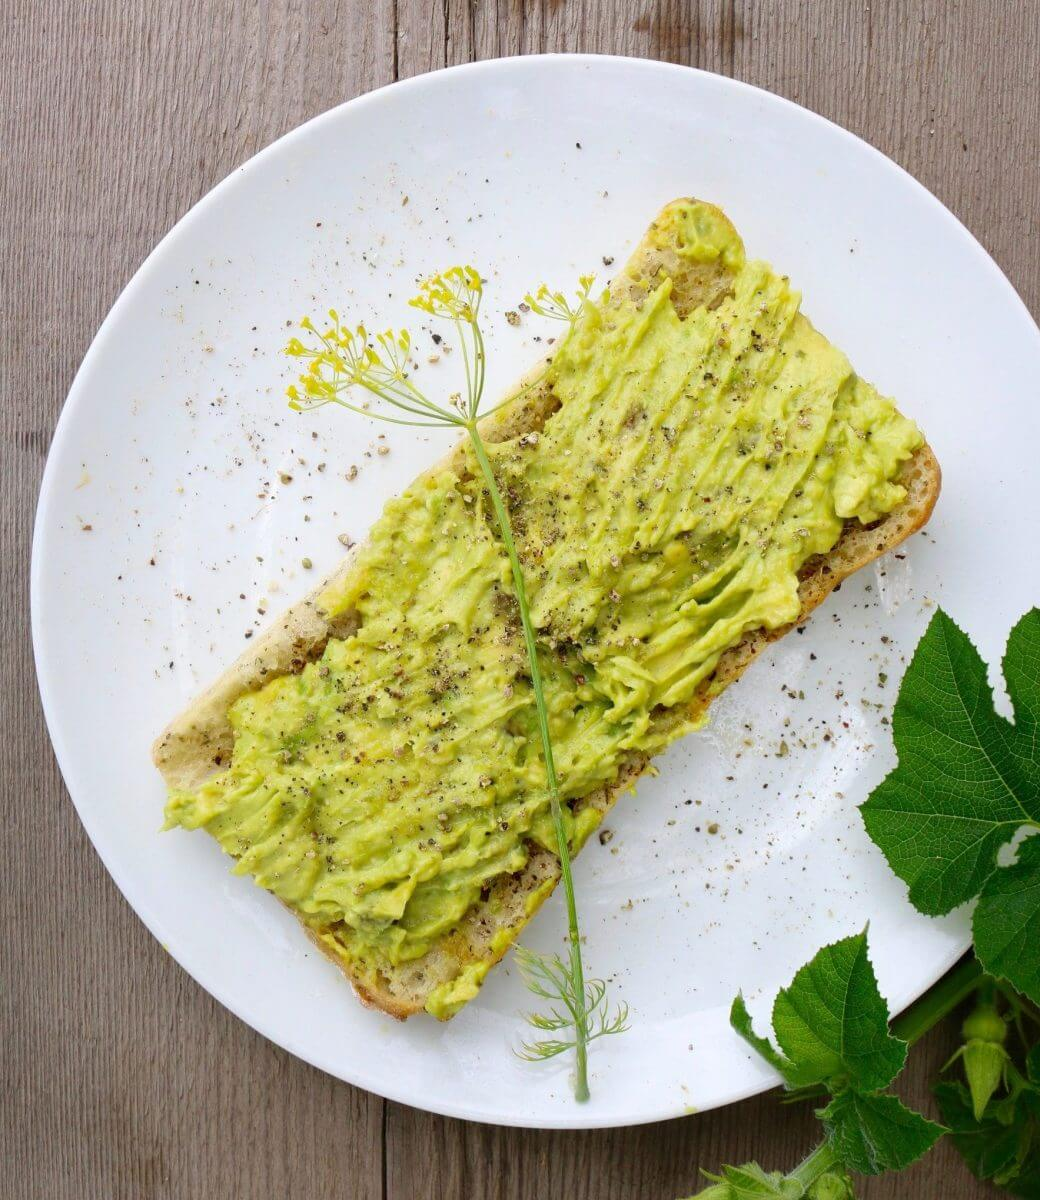 Rustic Avocado Garlic Toast (Vegan) - Sharon Palmer